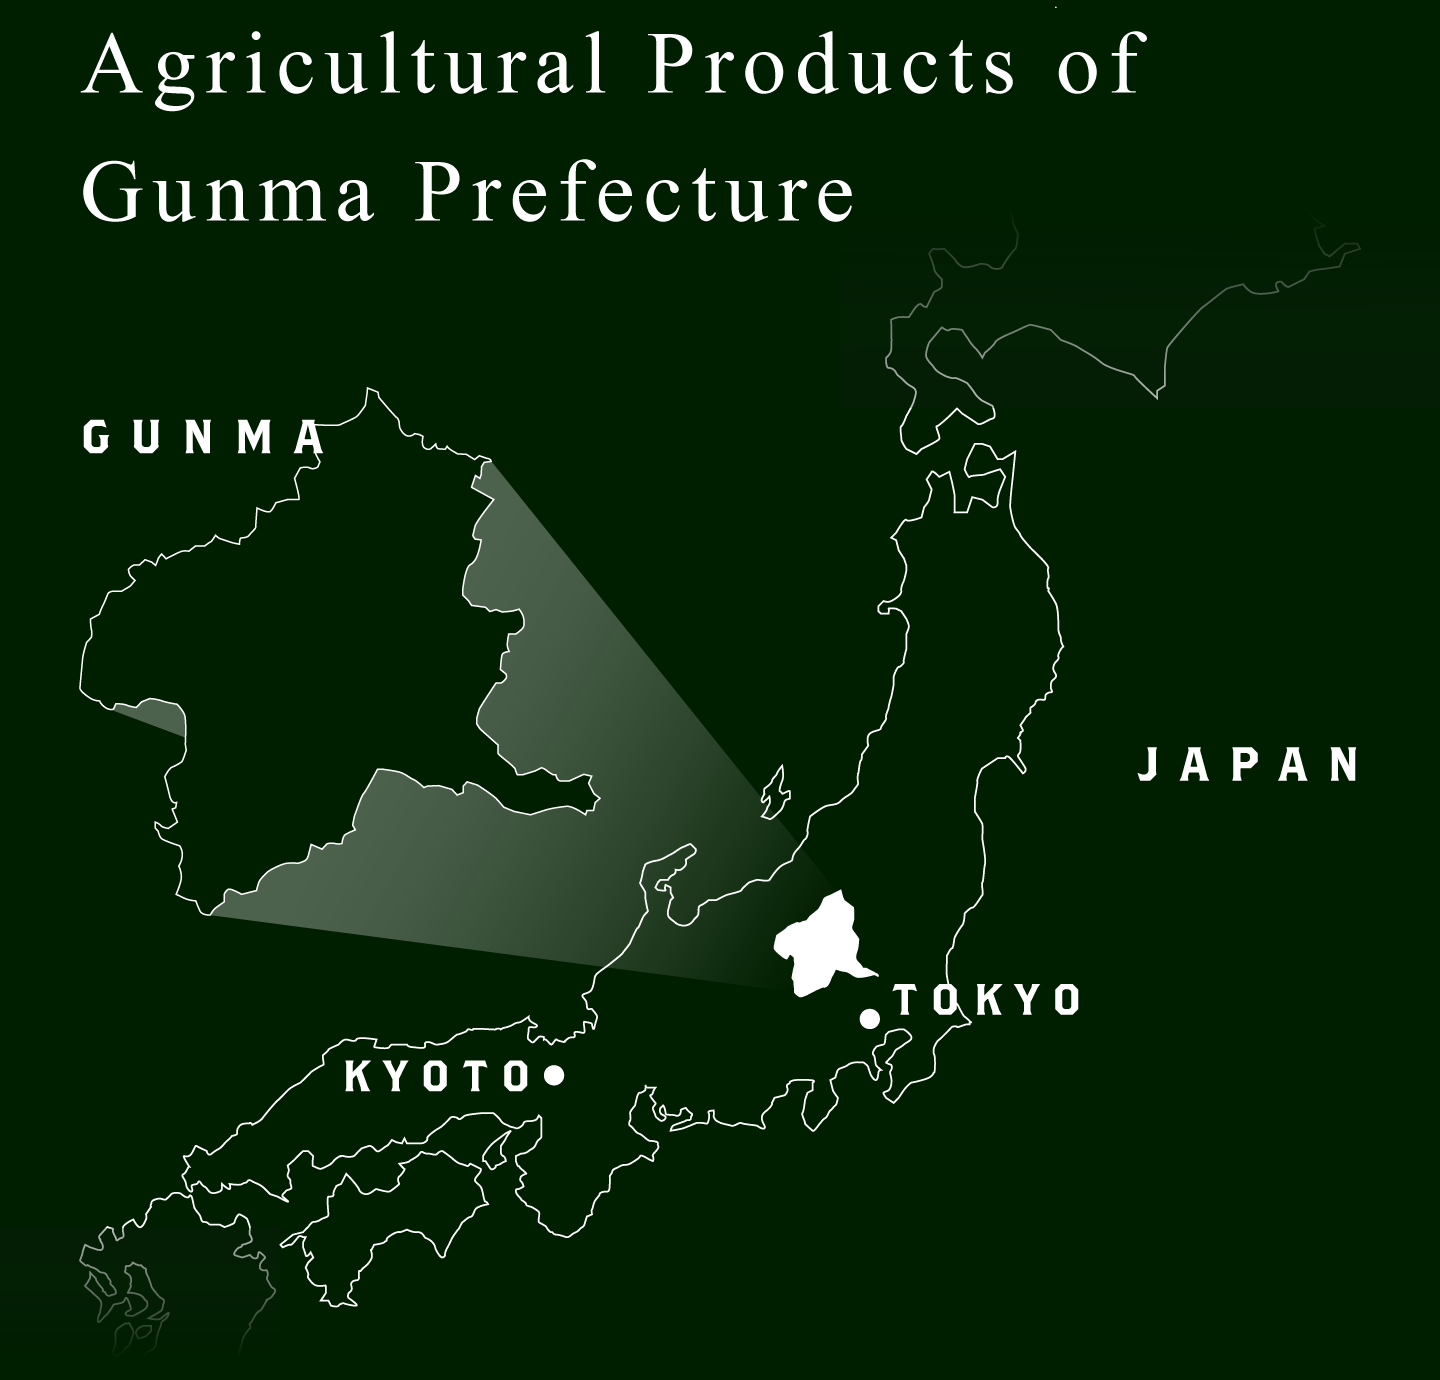 Agricultural Products of Gunma Prefecture